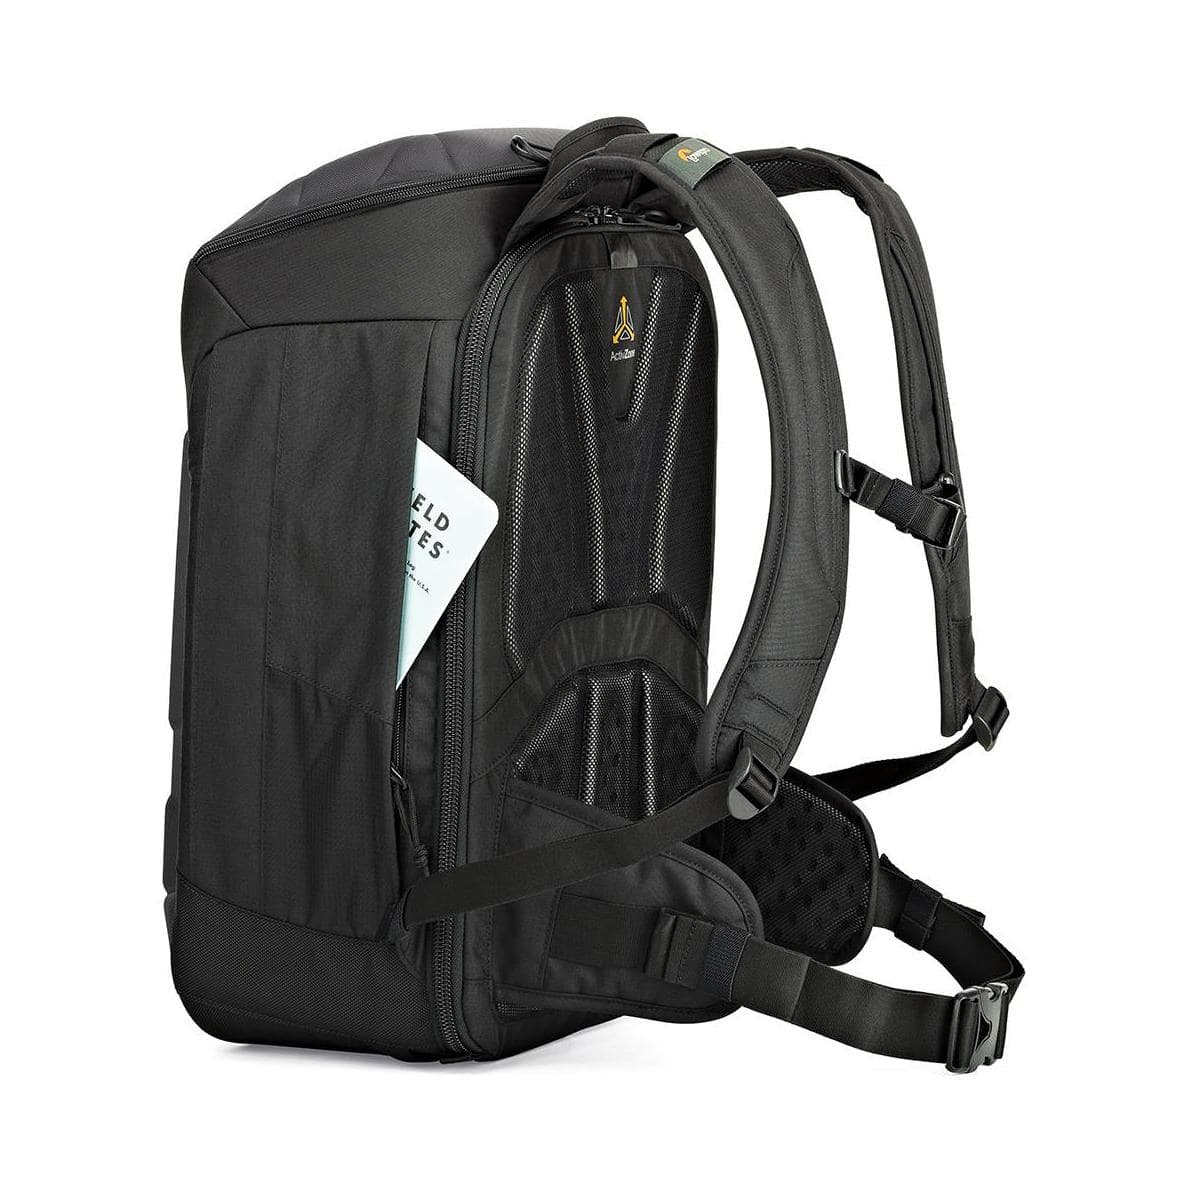 ... Pro 450 Backpack for DJI Phantom Drones on sale for  59.95. Shipping is  free. Thanks iconian. Deal Image  Deal Image. Deal Image a401071254c20